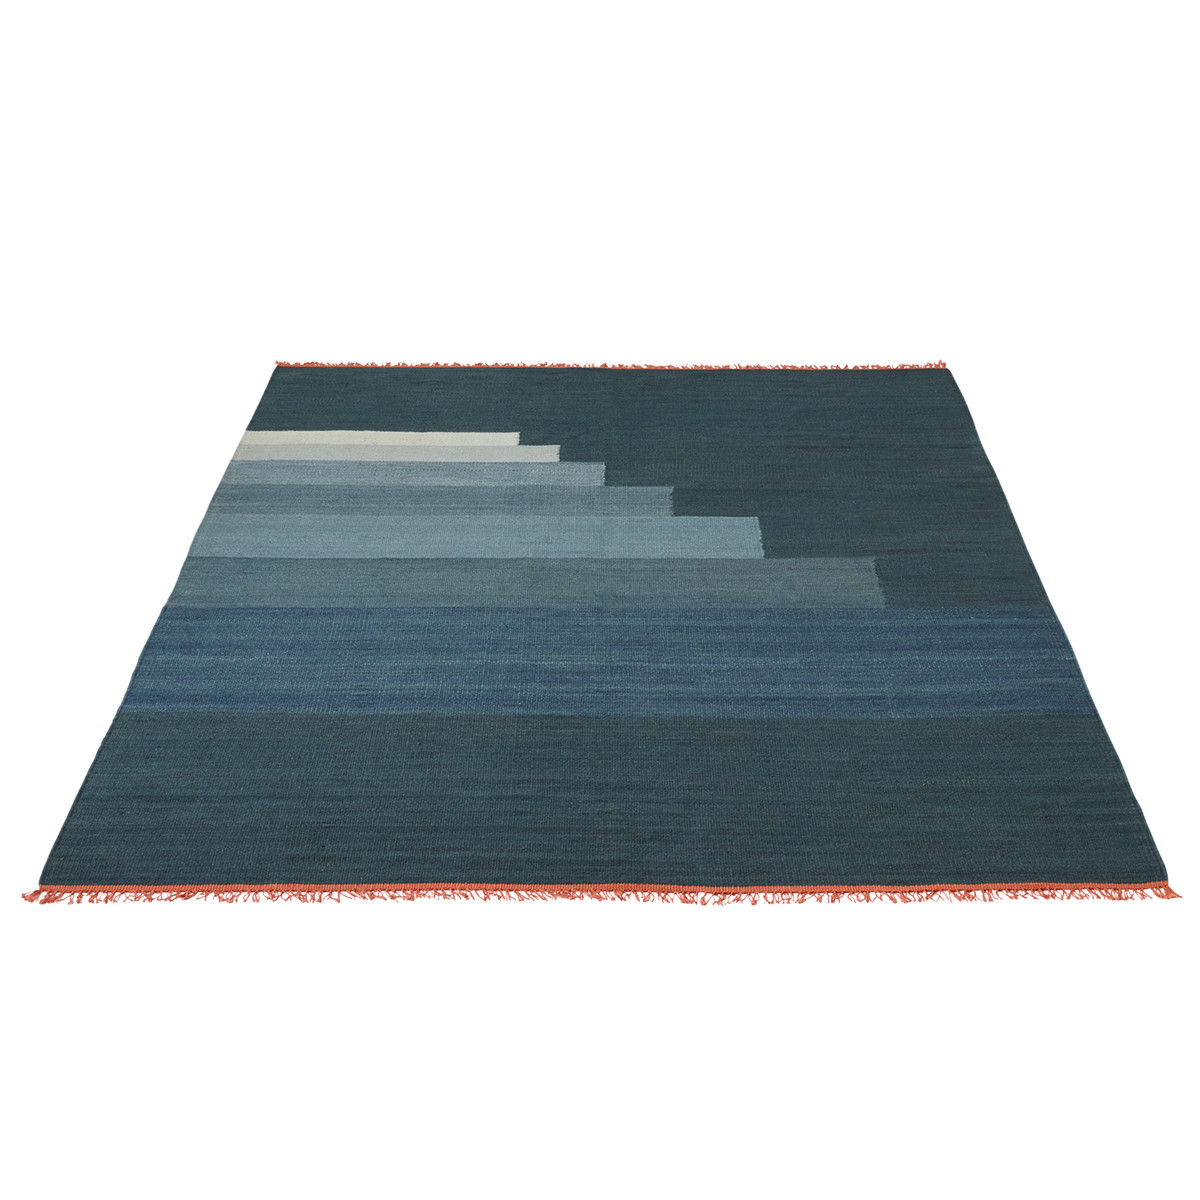 tradition another rug ap4 teppich 200 x 300 cm blue. Black Bedroom Furniture Sets. Home Design Ideas